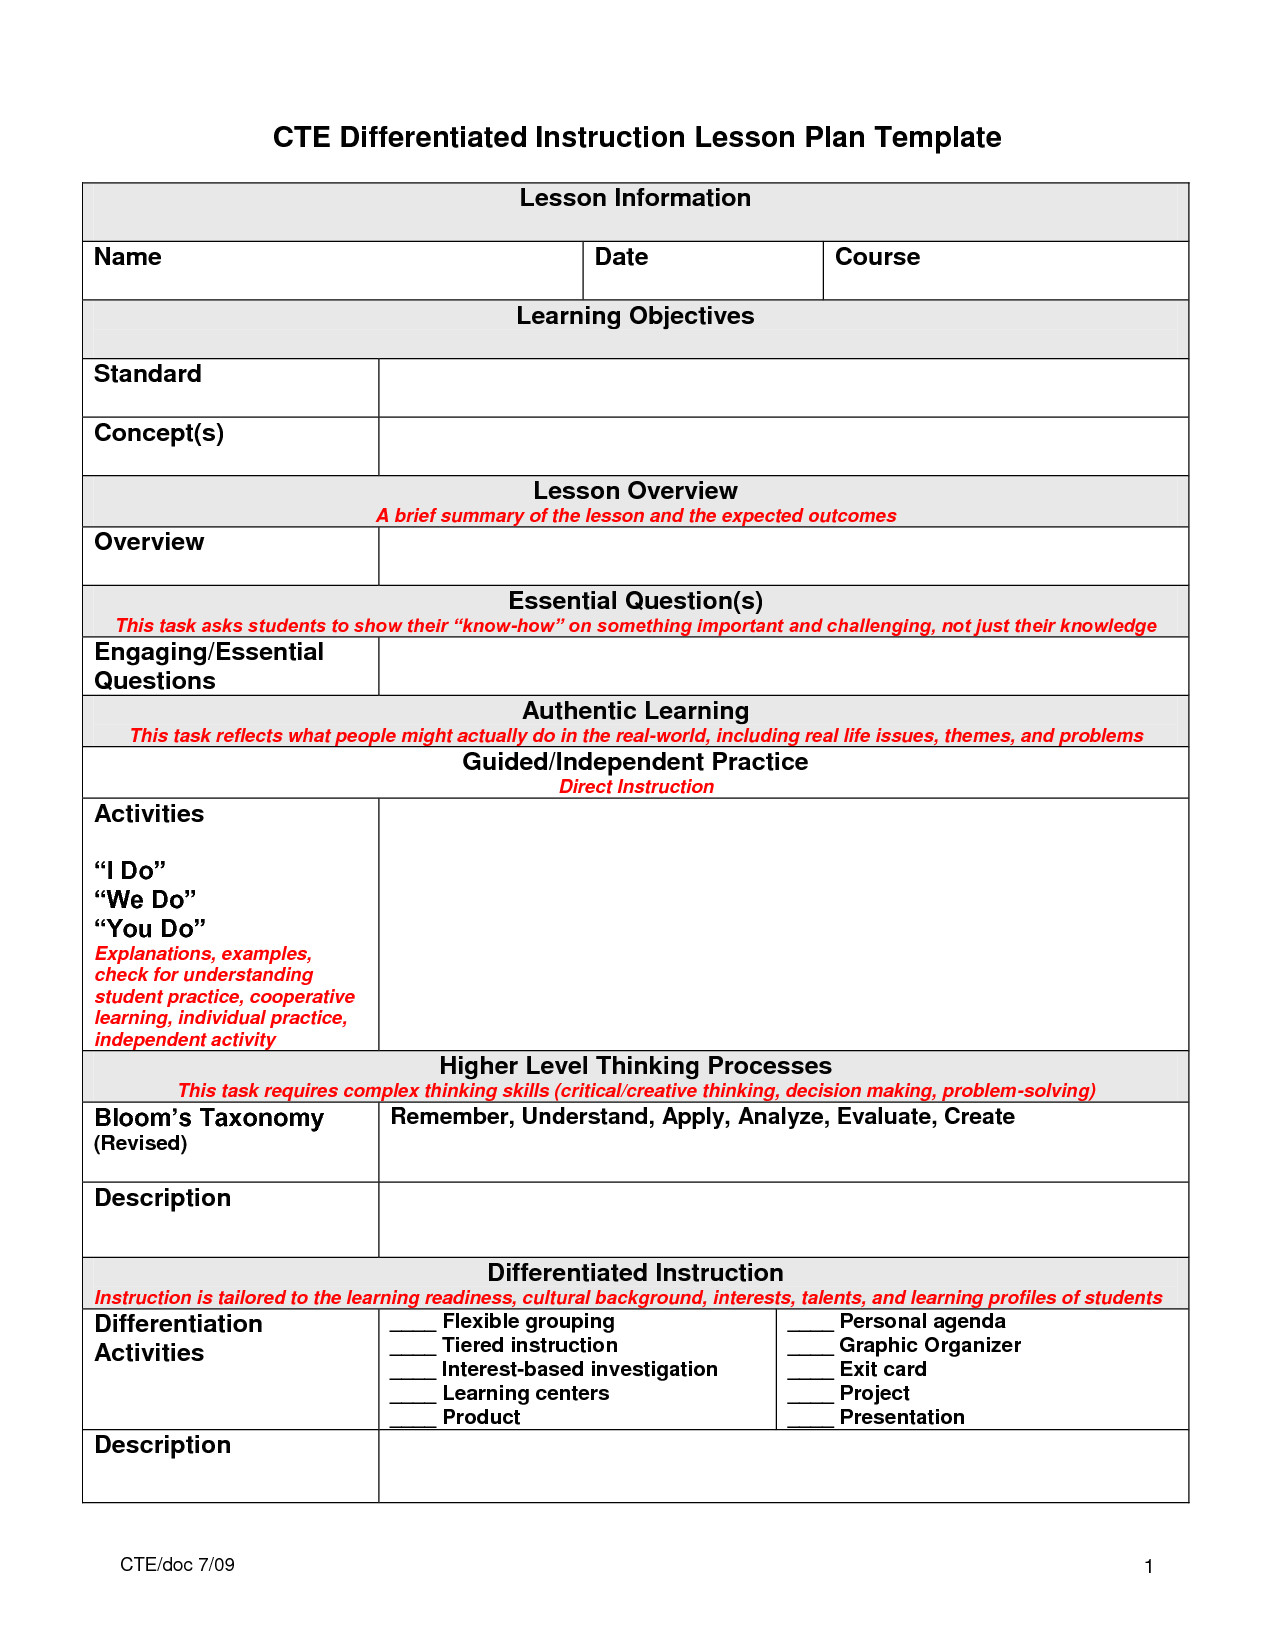 Differentiation Lesson Plan Template 5 Best Images Of Essential Question Lesson Plan Template